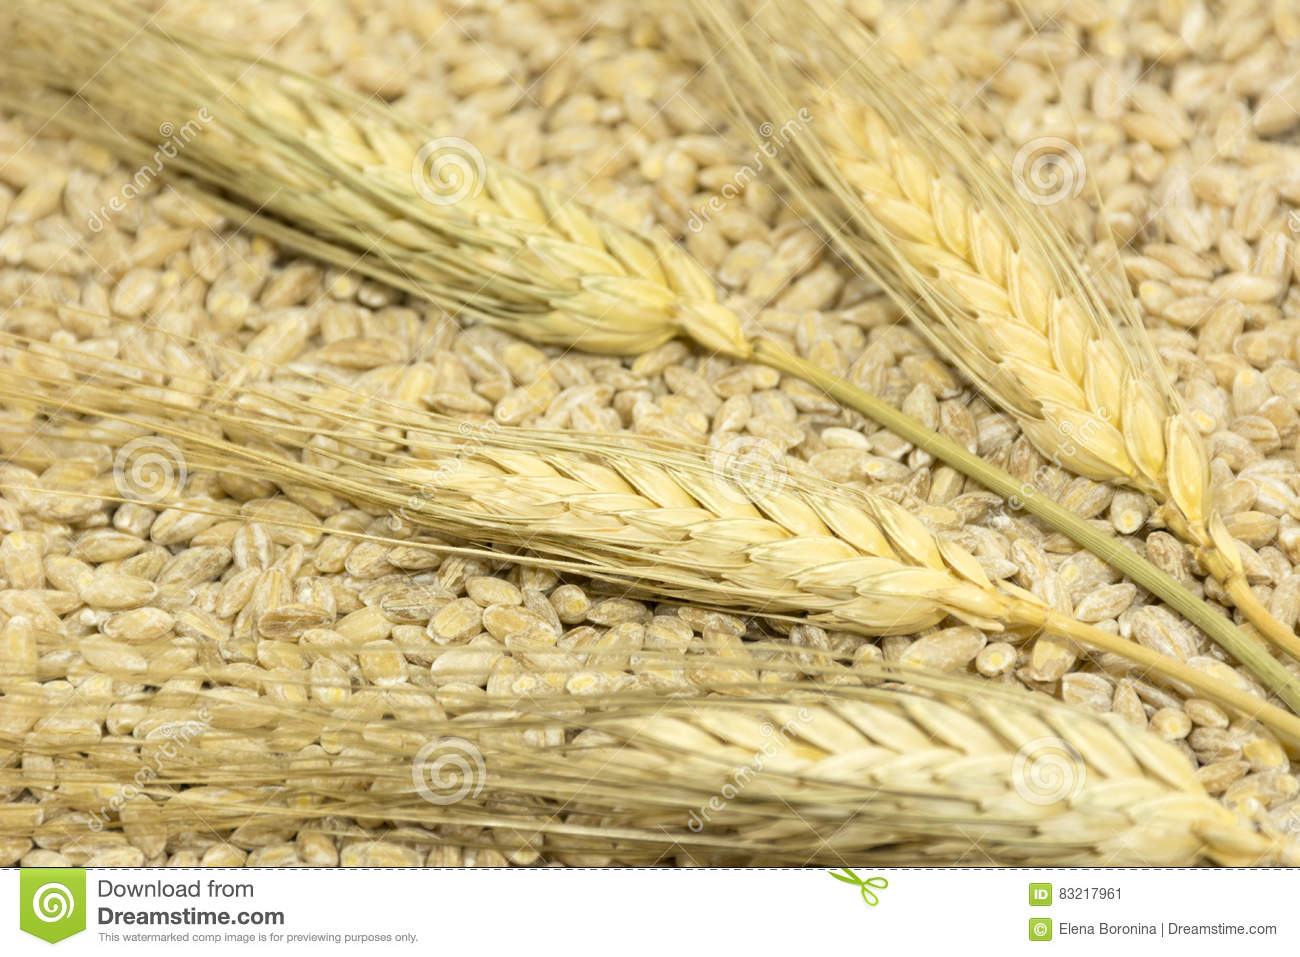 thesis statements on harvesting wheat The biodiversity heritage library works  impact statements forest reserves harvesting law and  economics thesis ph d fu harvesting.